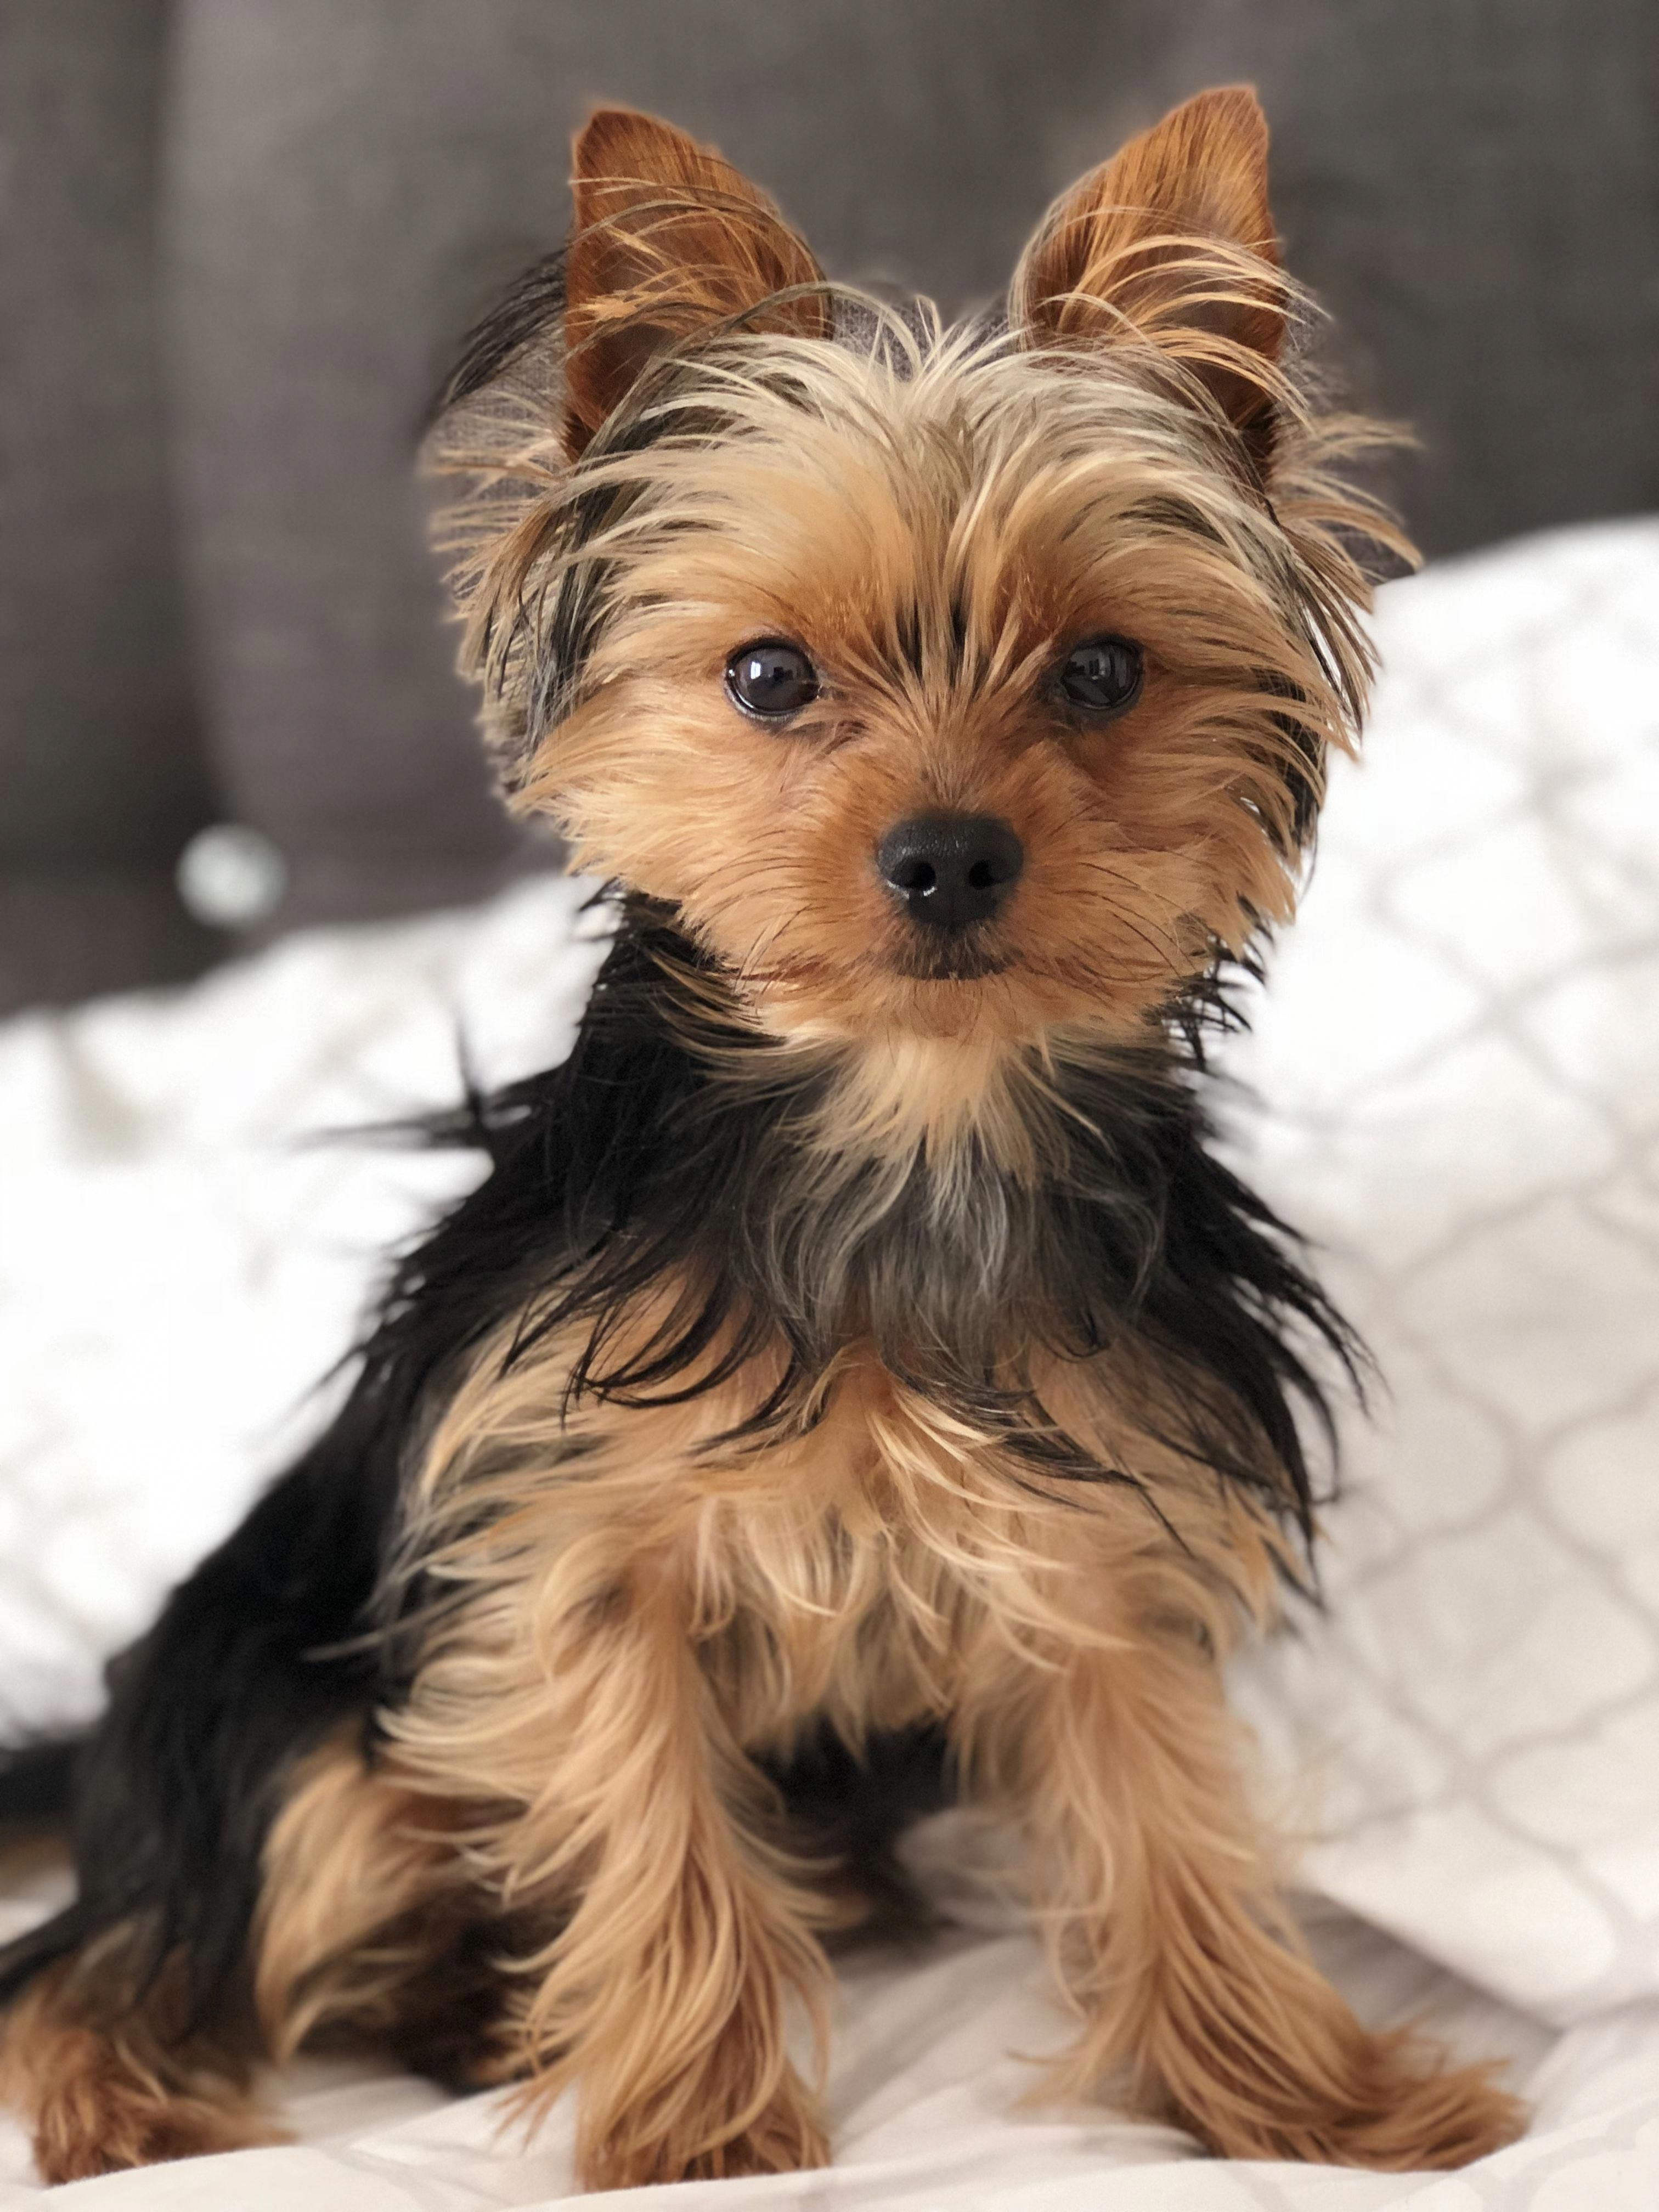 Yorkshire Terrier Energetic And Affectionate Yorkshire Terrier Puppies Yorkshire Terrier Yorkshire Terrier Dog